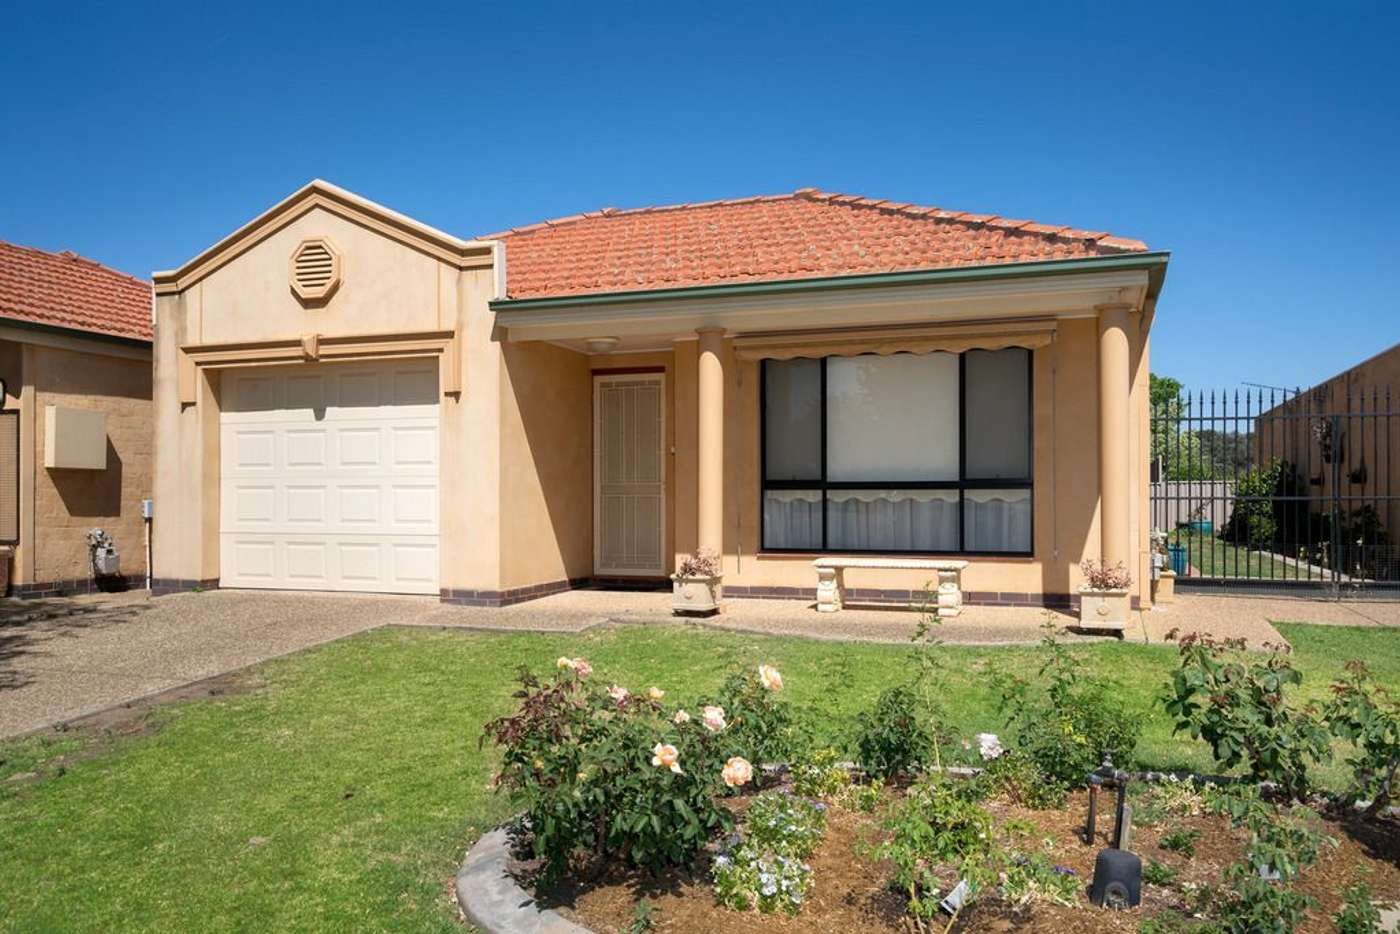 Main view of Homely house listing, 41 Galing Place, Wagga Wagga NSW 2650